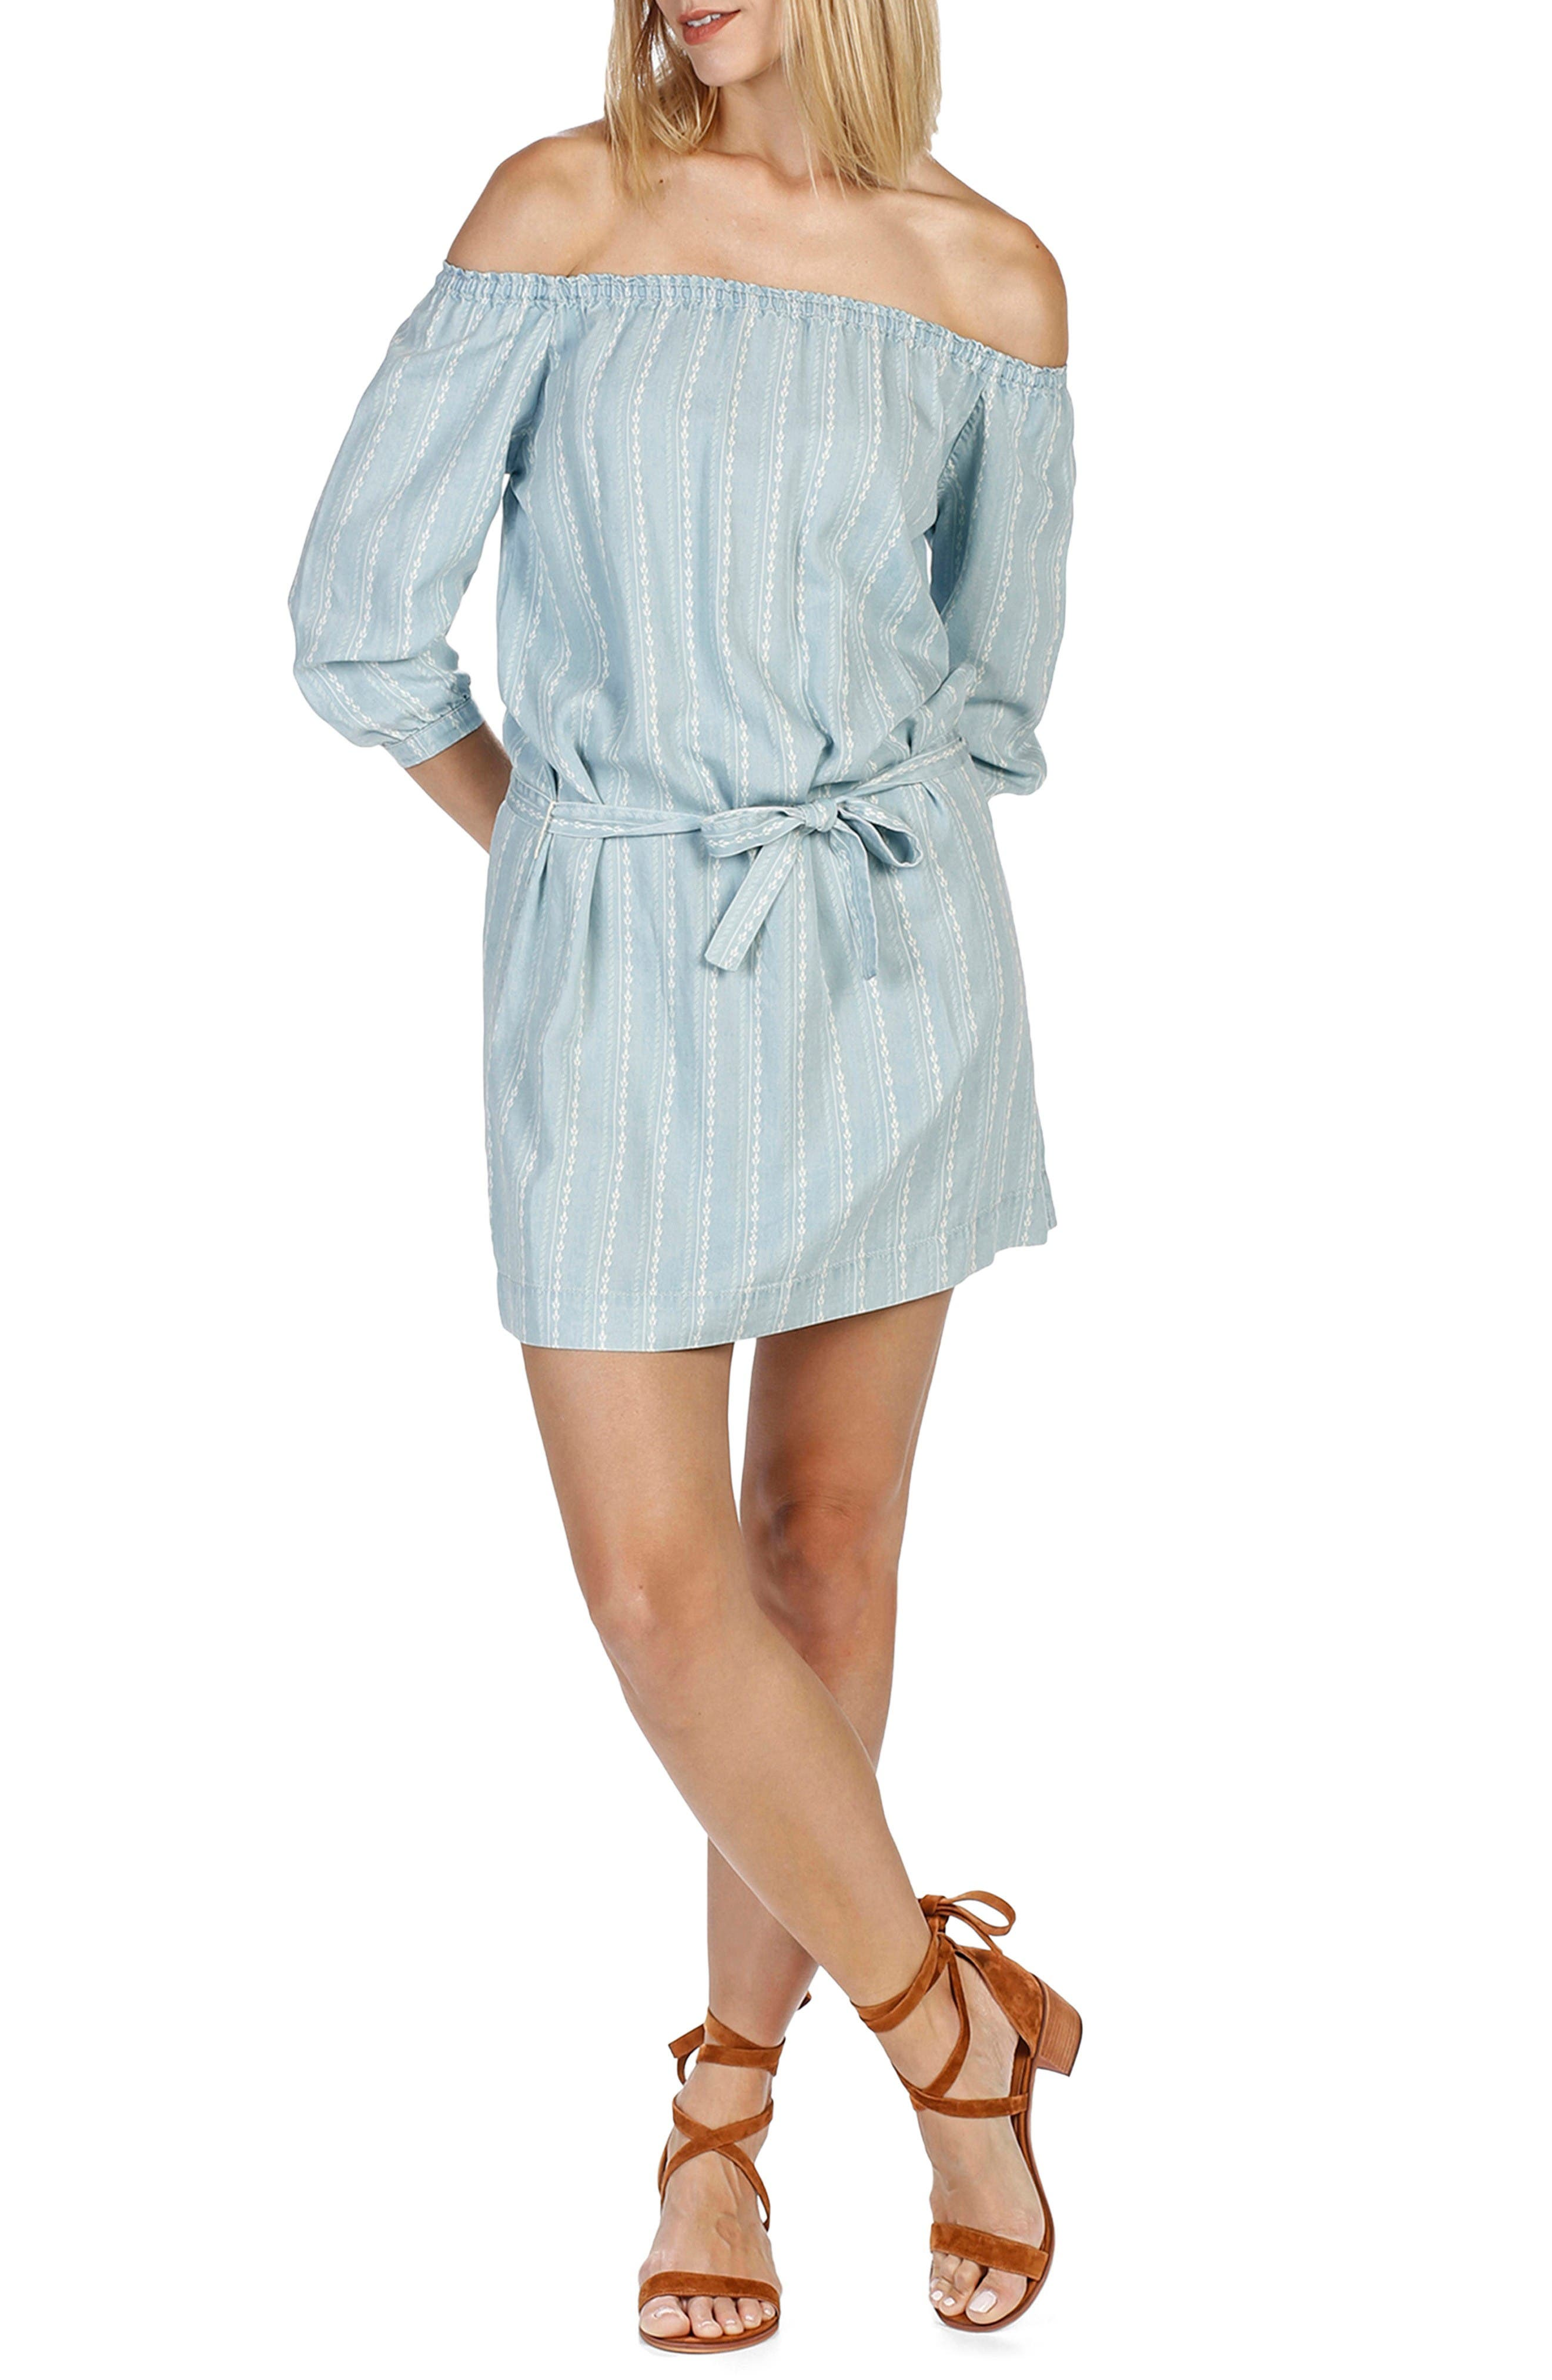 Alternate Image 1 Selected - PAIGE Beatrice Chambray Off the Shoulder Dress